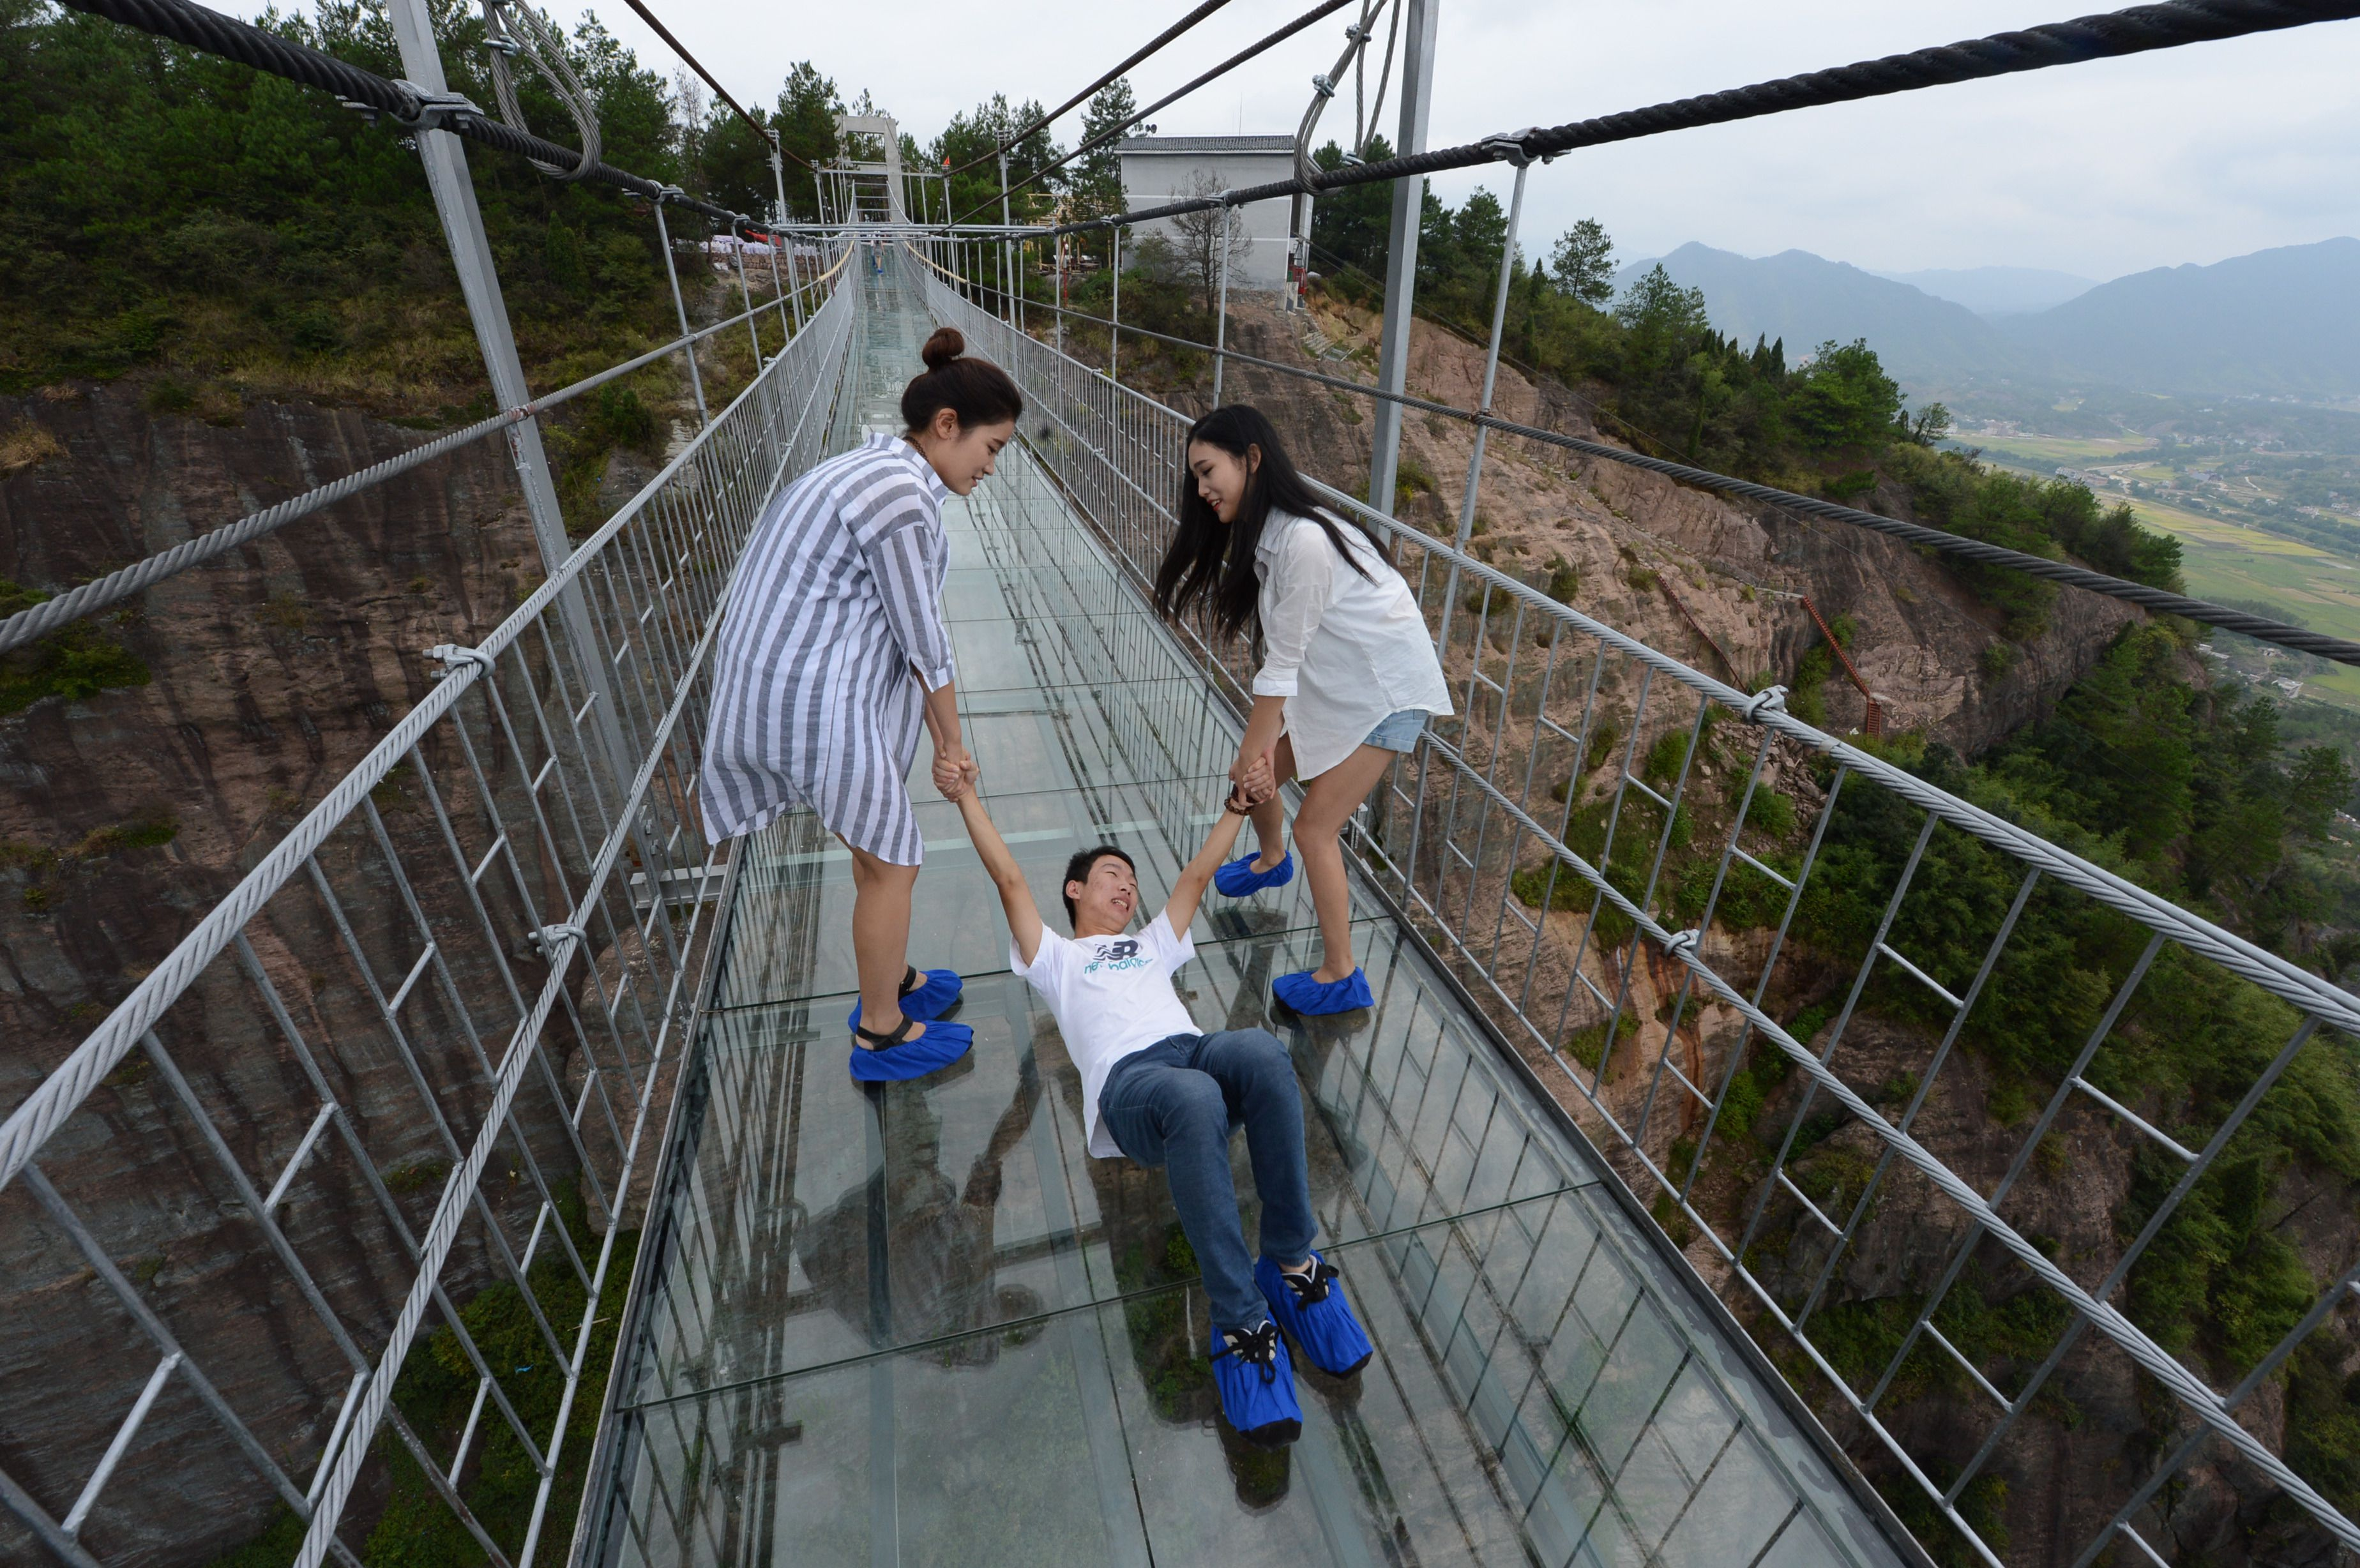 China dares you to cross its giant glass bridge | The Verge